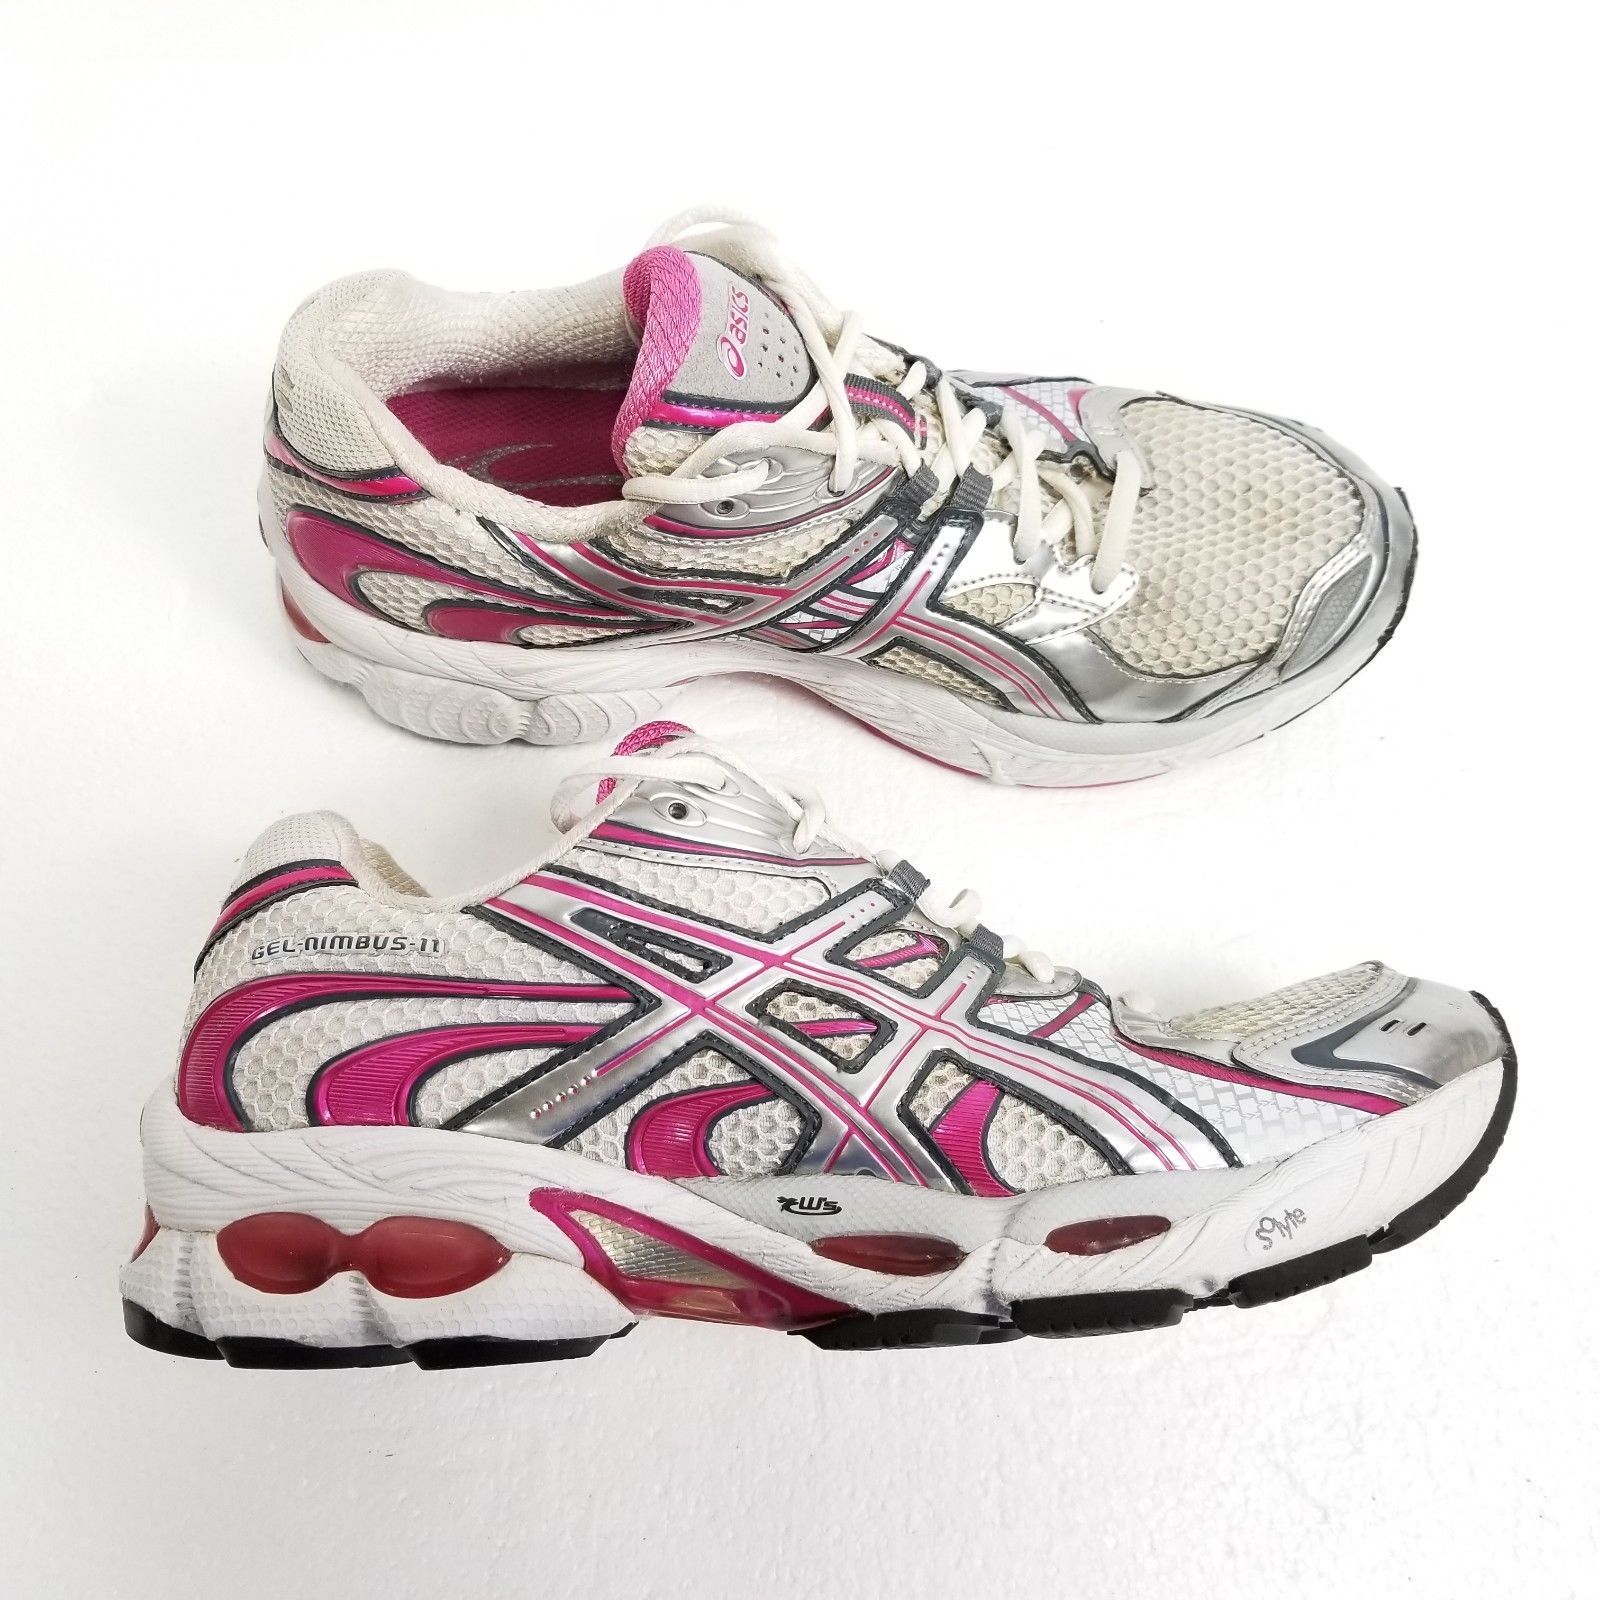 check out 4ab0a 35843 Asics Gel Nimbus 11 Womens Running Shoes and 43 similar items. 57